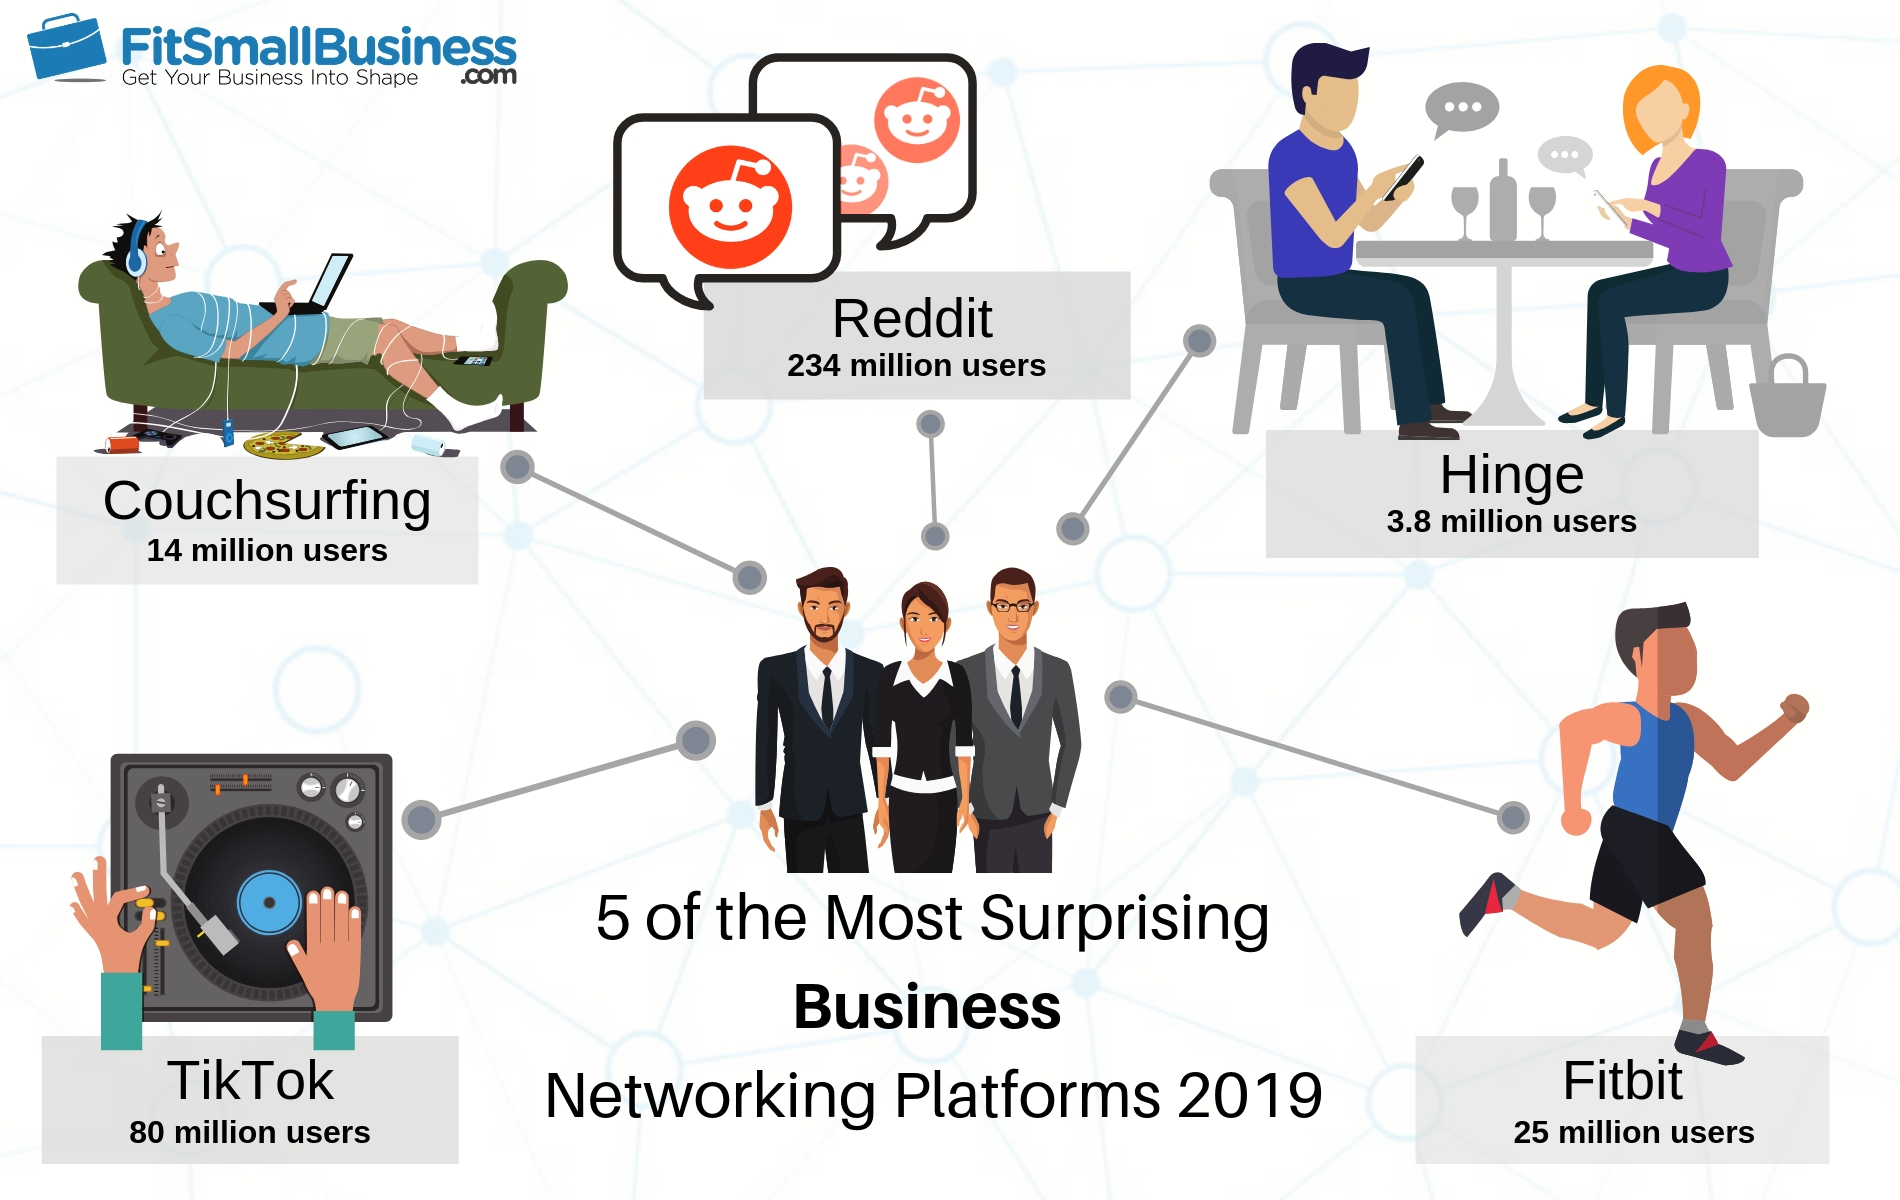 an infographic of the Most Surprising Business Networking Platforms